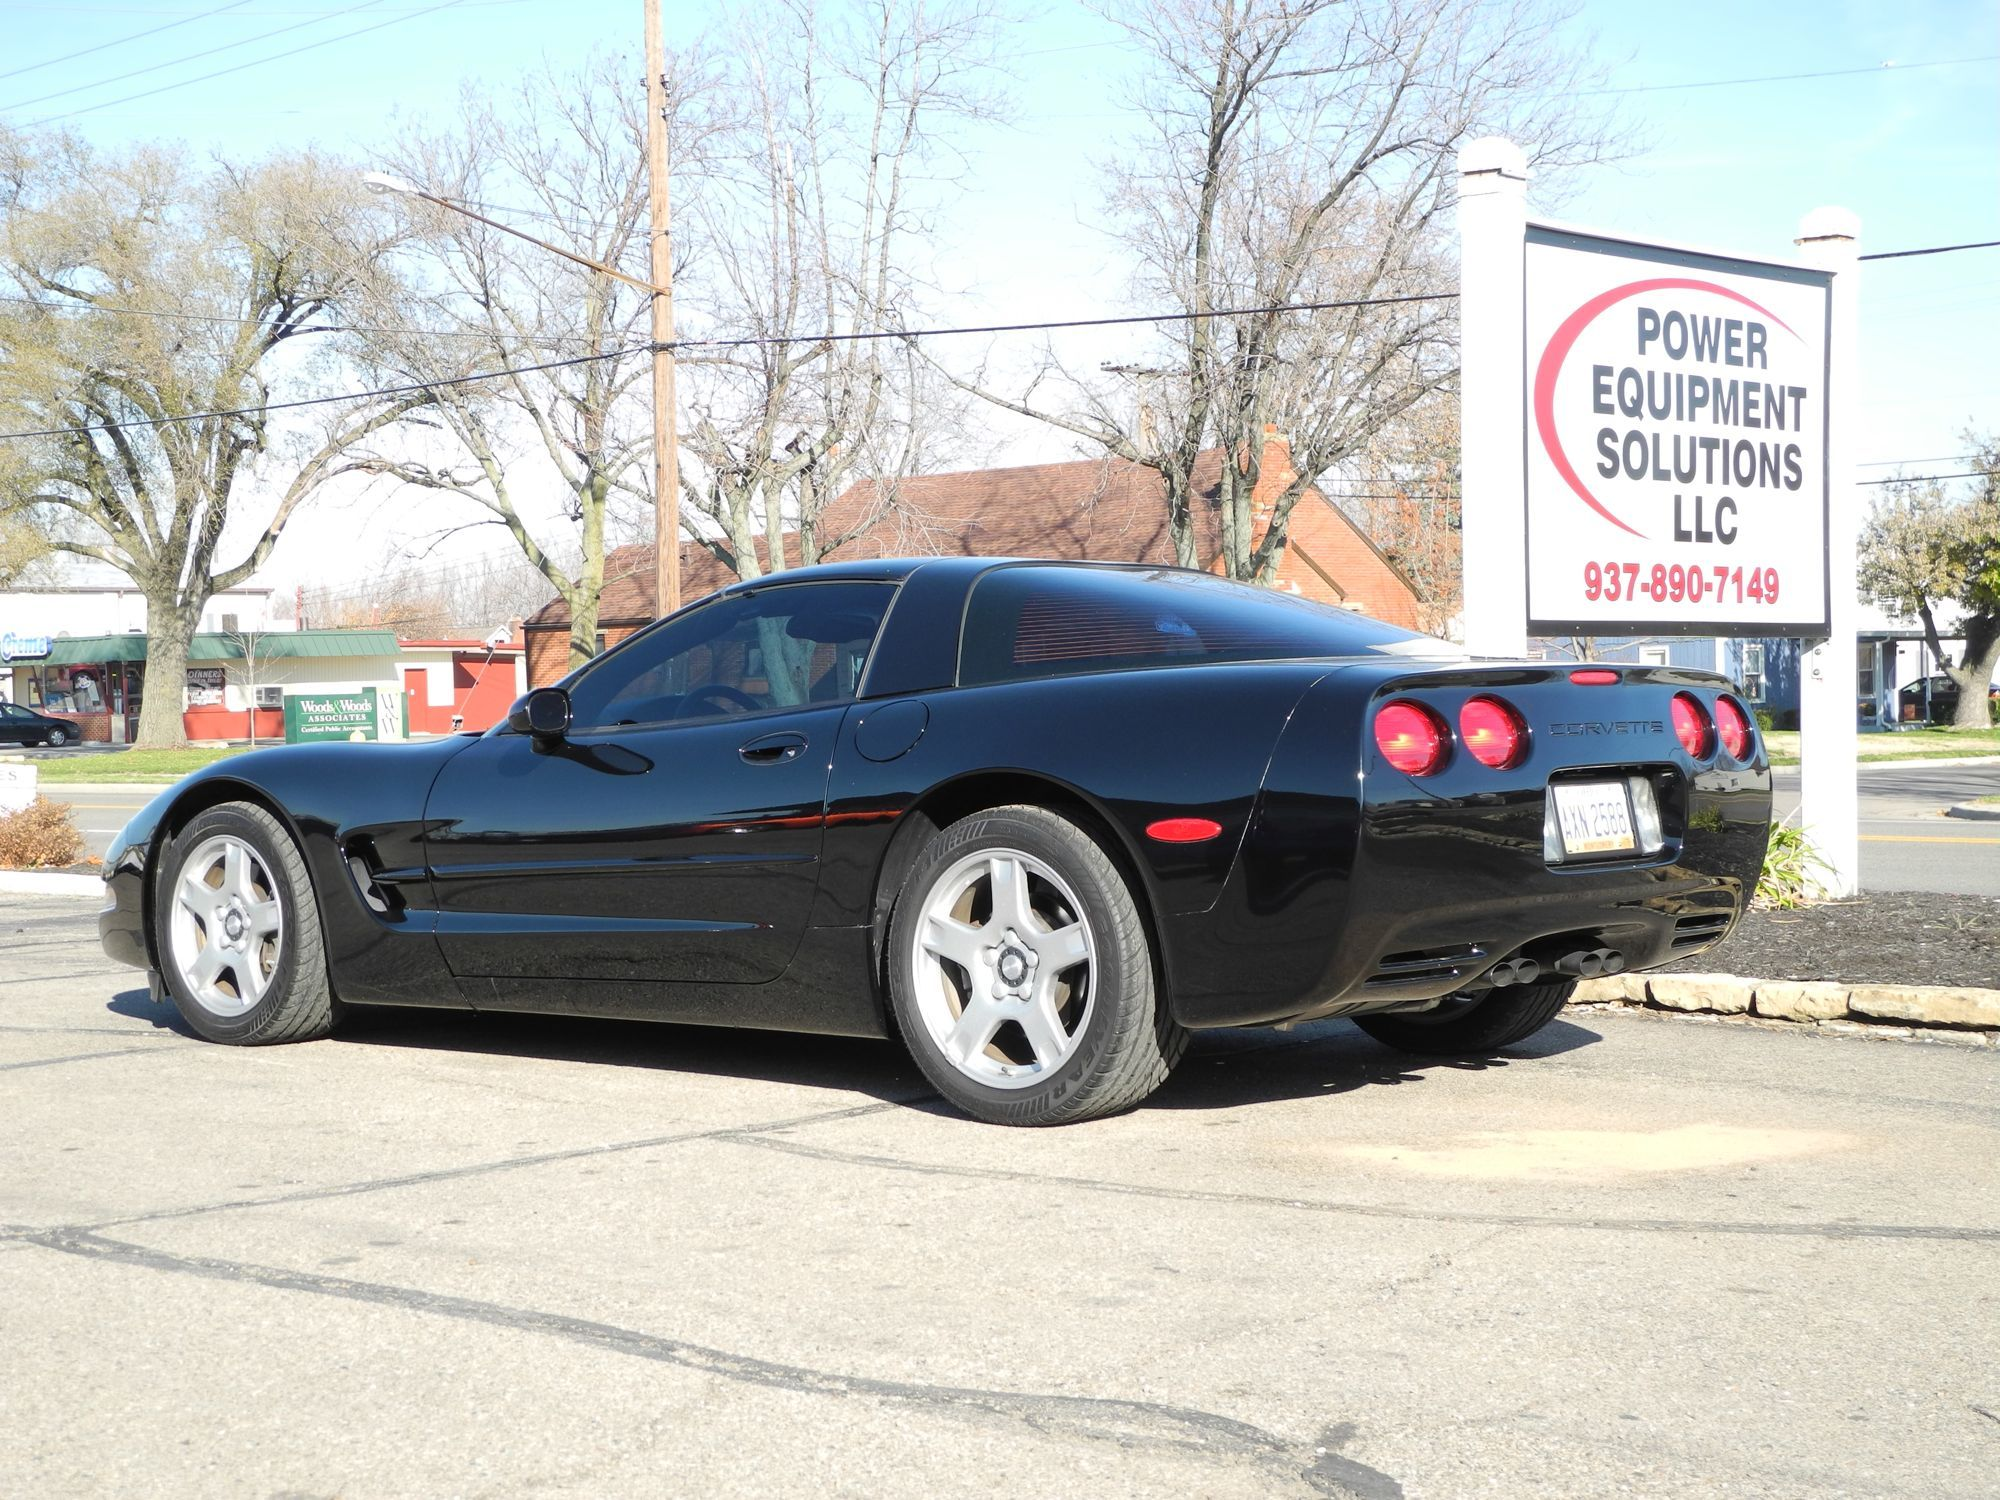 We Ve Just Lowered The Asking Price Of Our C5 Corvette To 19 999 This Black Beauty Has Less Than 11 000 Miles And Is A H Chevrolet Corvette Corvette C5 Coupe